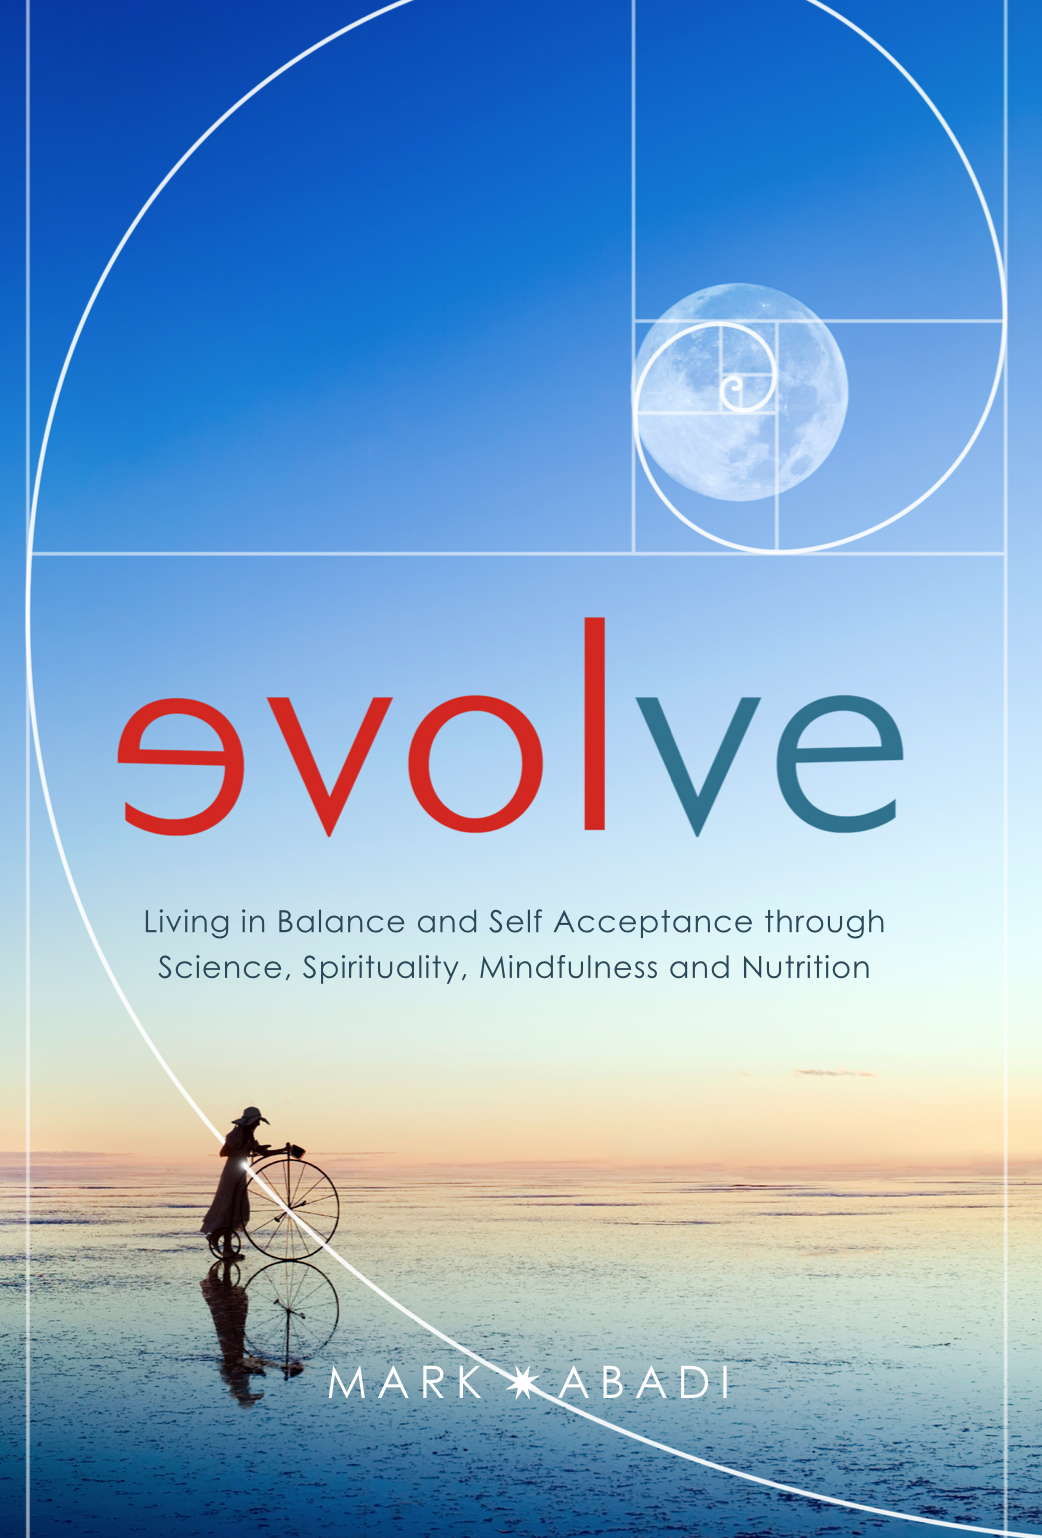 Evolve - Living in balance and self acceptance through science, spirituality, mindfulness and nutrition